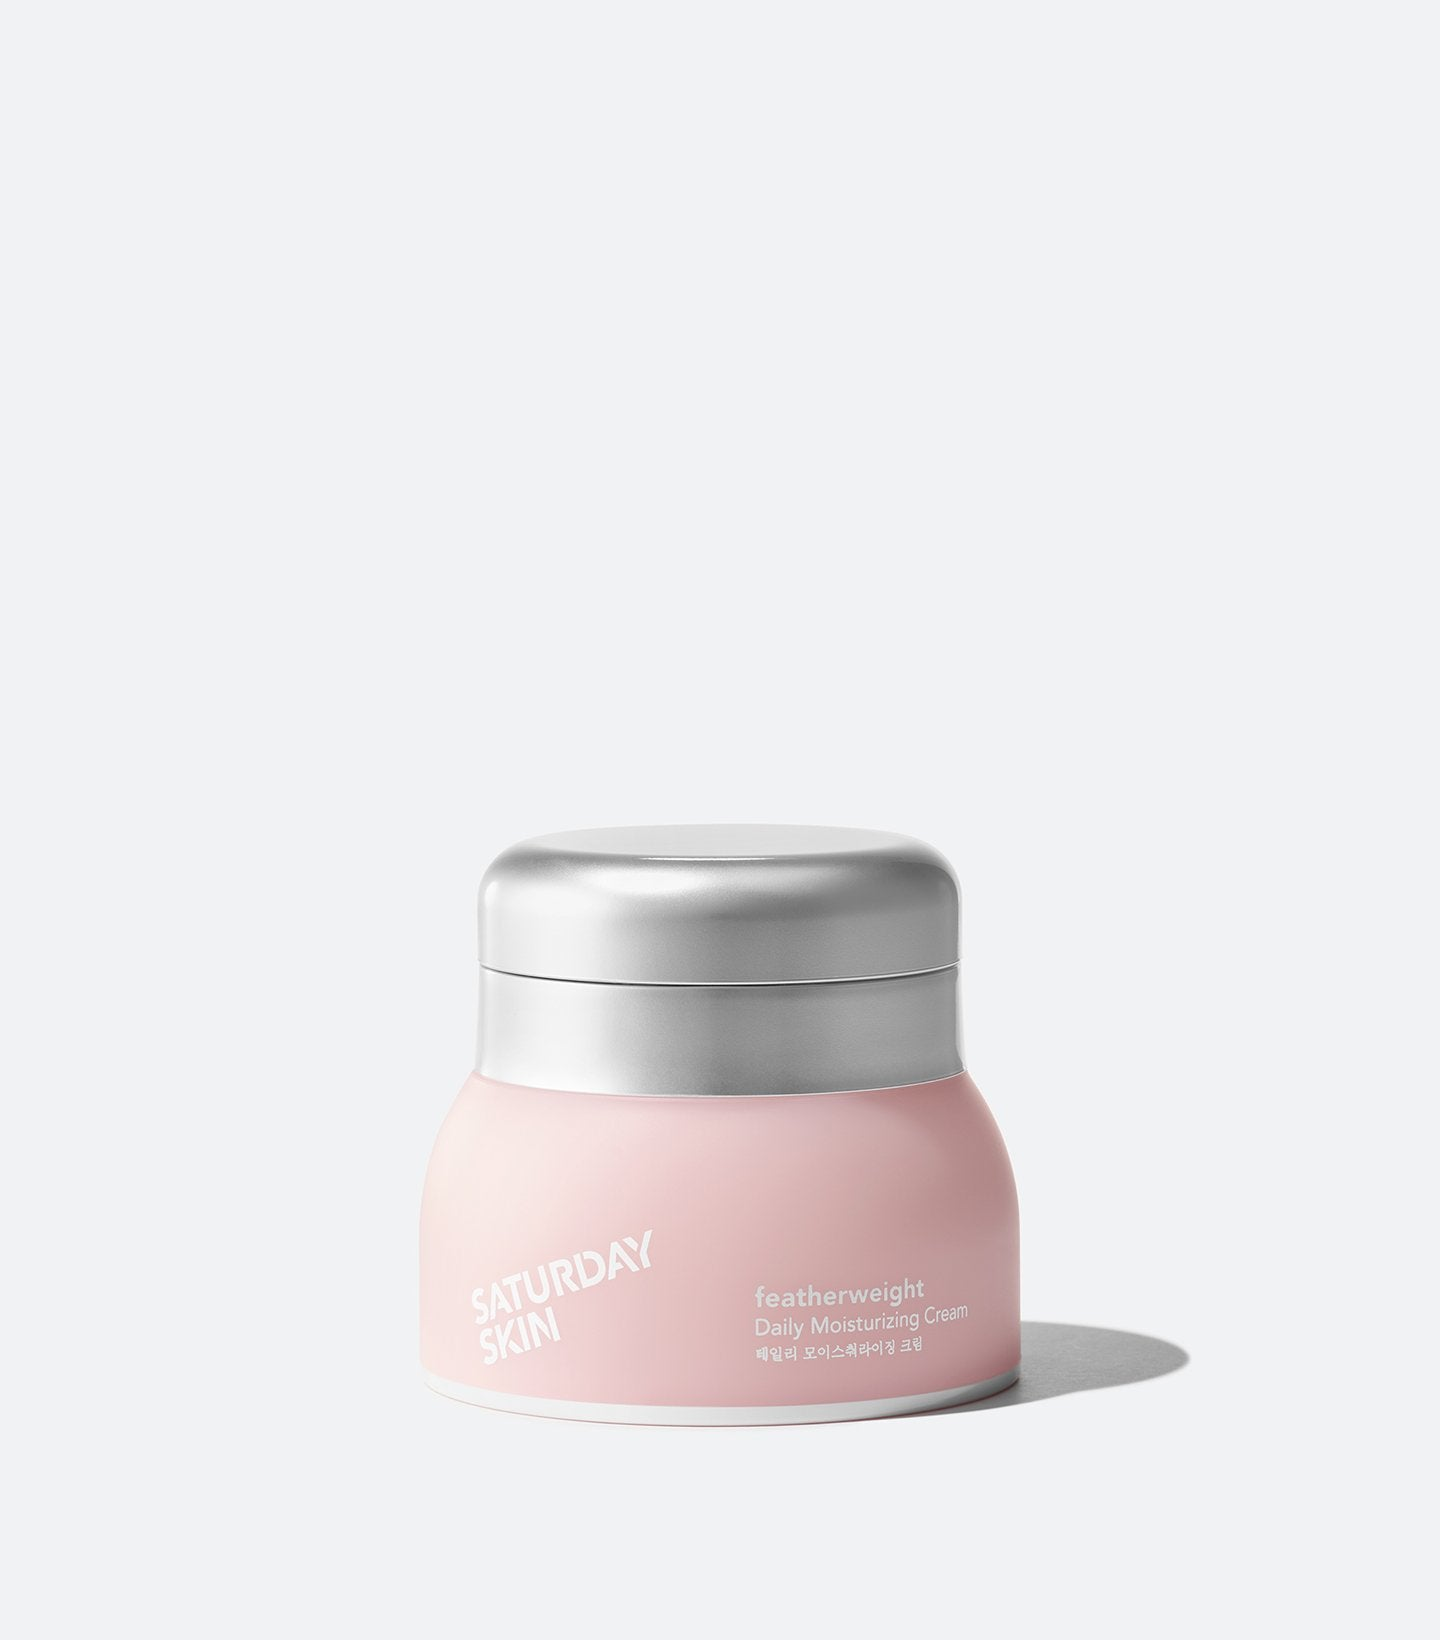 Featherweight Daily Moisturizing Cream